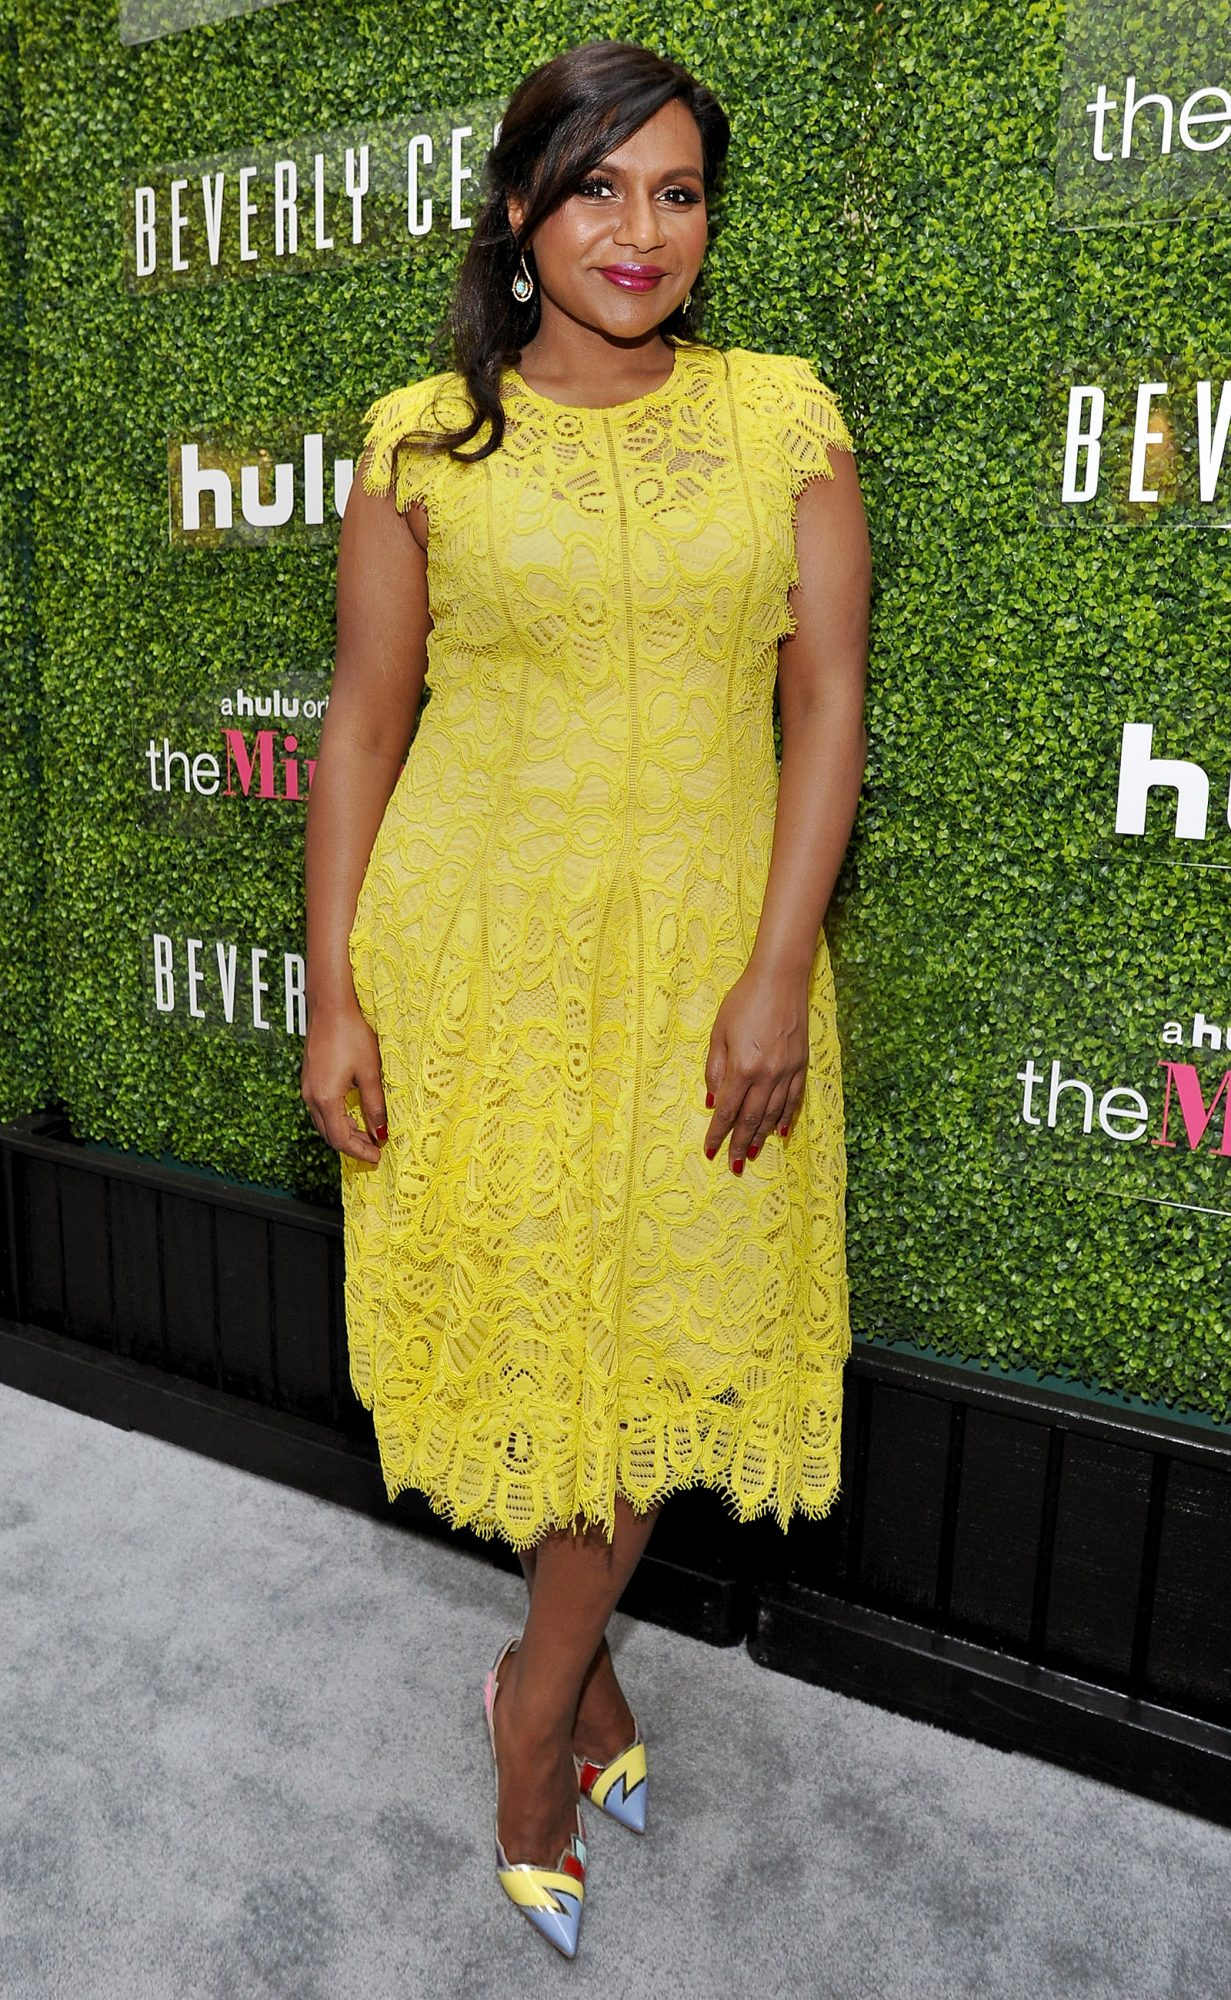 Beverly Center Presents The Mindy Project Costume Conversation with Mindy Kaling And Salvador Perez